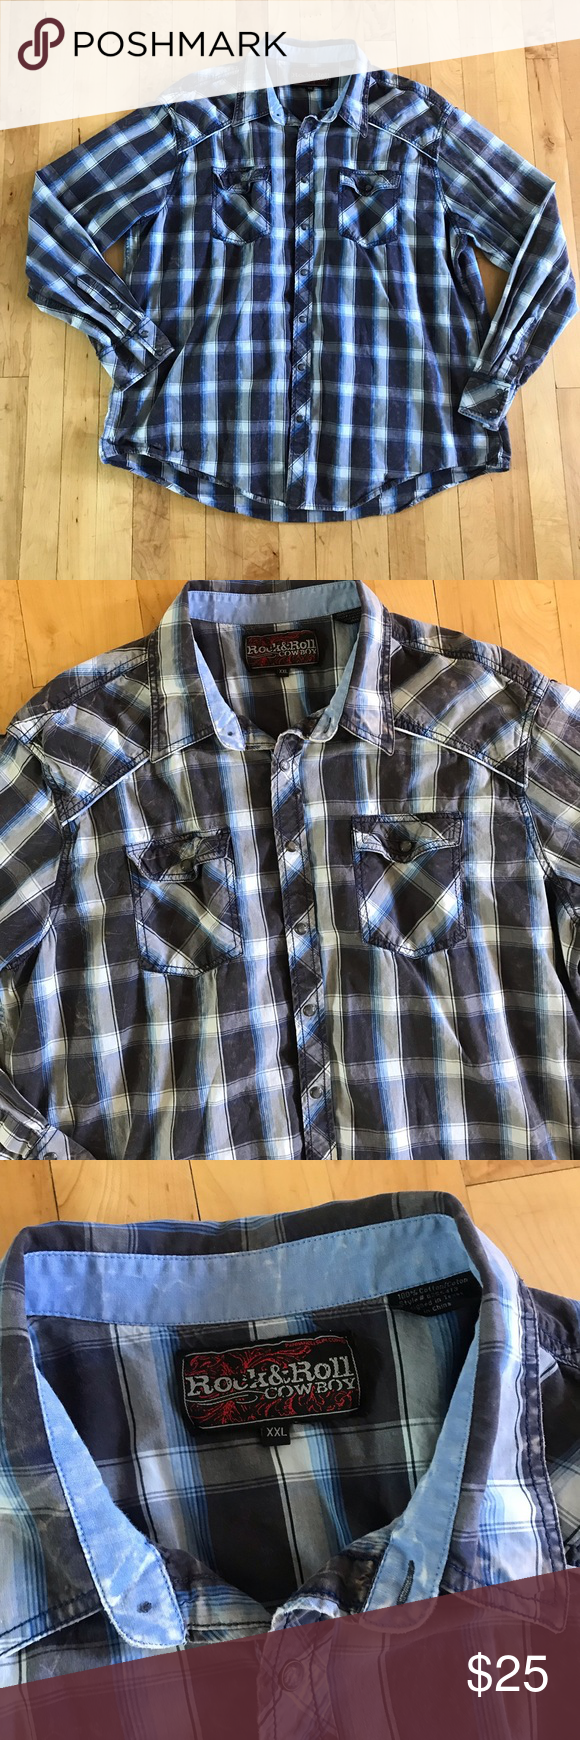 Rock and Roll Cowboy Button Down Rock and Roll Cowboy Button Down Size XXL Excellent condition 100% cotton   All measurements are approximate and taken laying on the floor  Armpit to armpit: 27 inches Length: 30 inches Rock and Roll Cowboy Shirts Casual Button Down Shirts #rockandrolloutfits